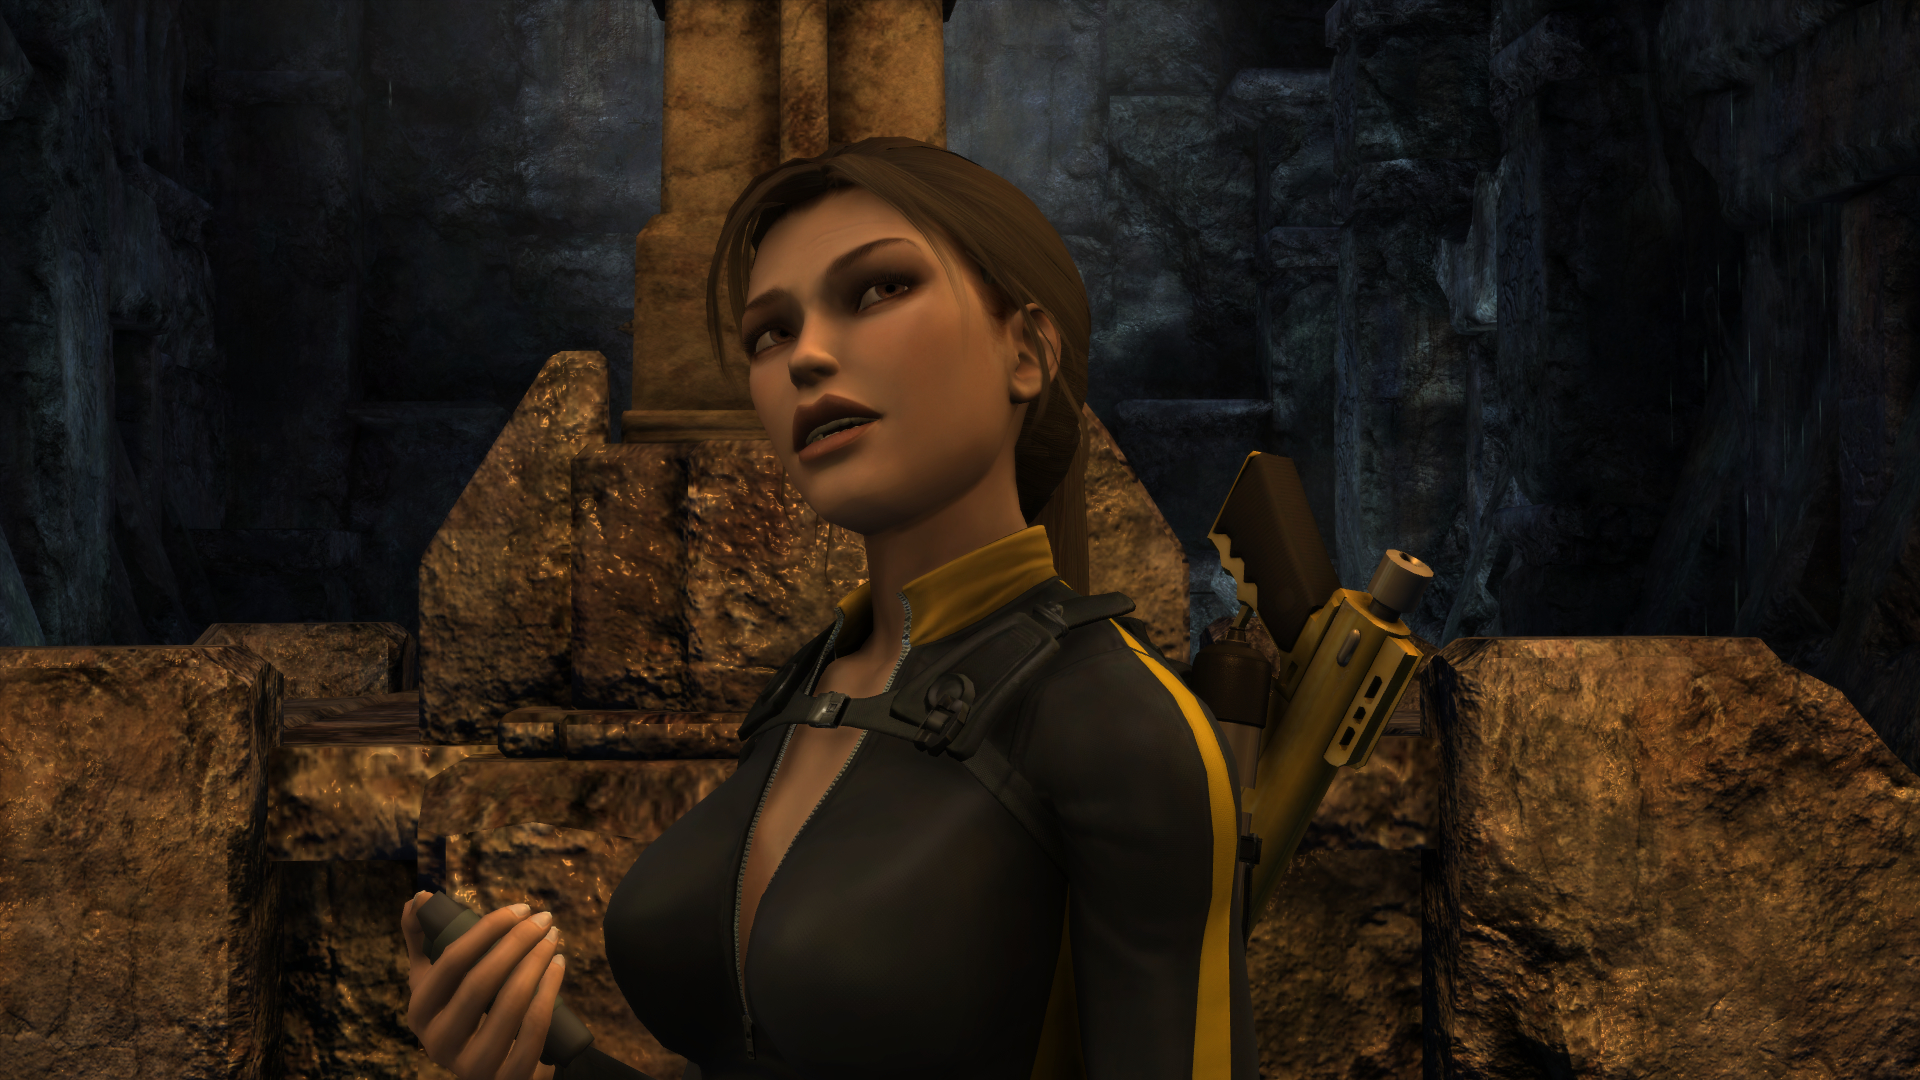 Tomb raider underworld bigger boivs mod anime scenes